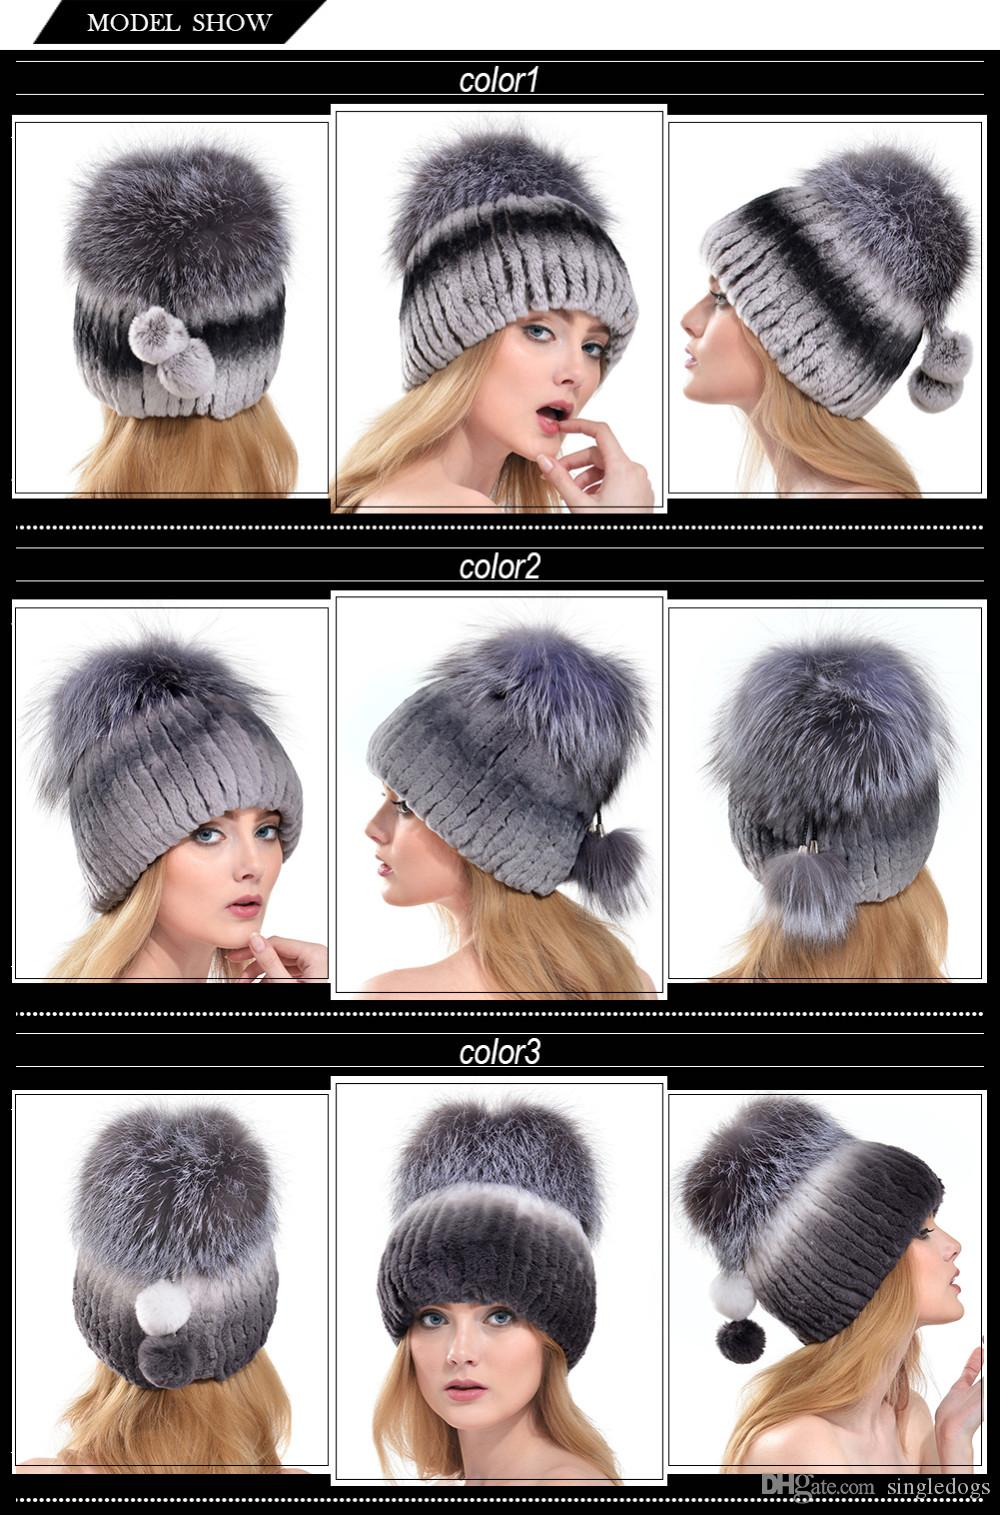 fb88c10fe8f Wholesale 2018 QUEENFUR Women Fashion Real Rex Rabbit Fur Hat With Silver  Fox Fur Big Pom Poms Beanies Winter Warm Thick Rabbit Fur Caps Baseball Hat  Beach ...